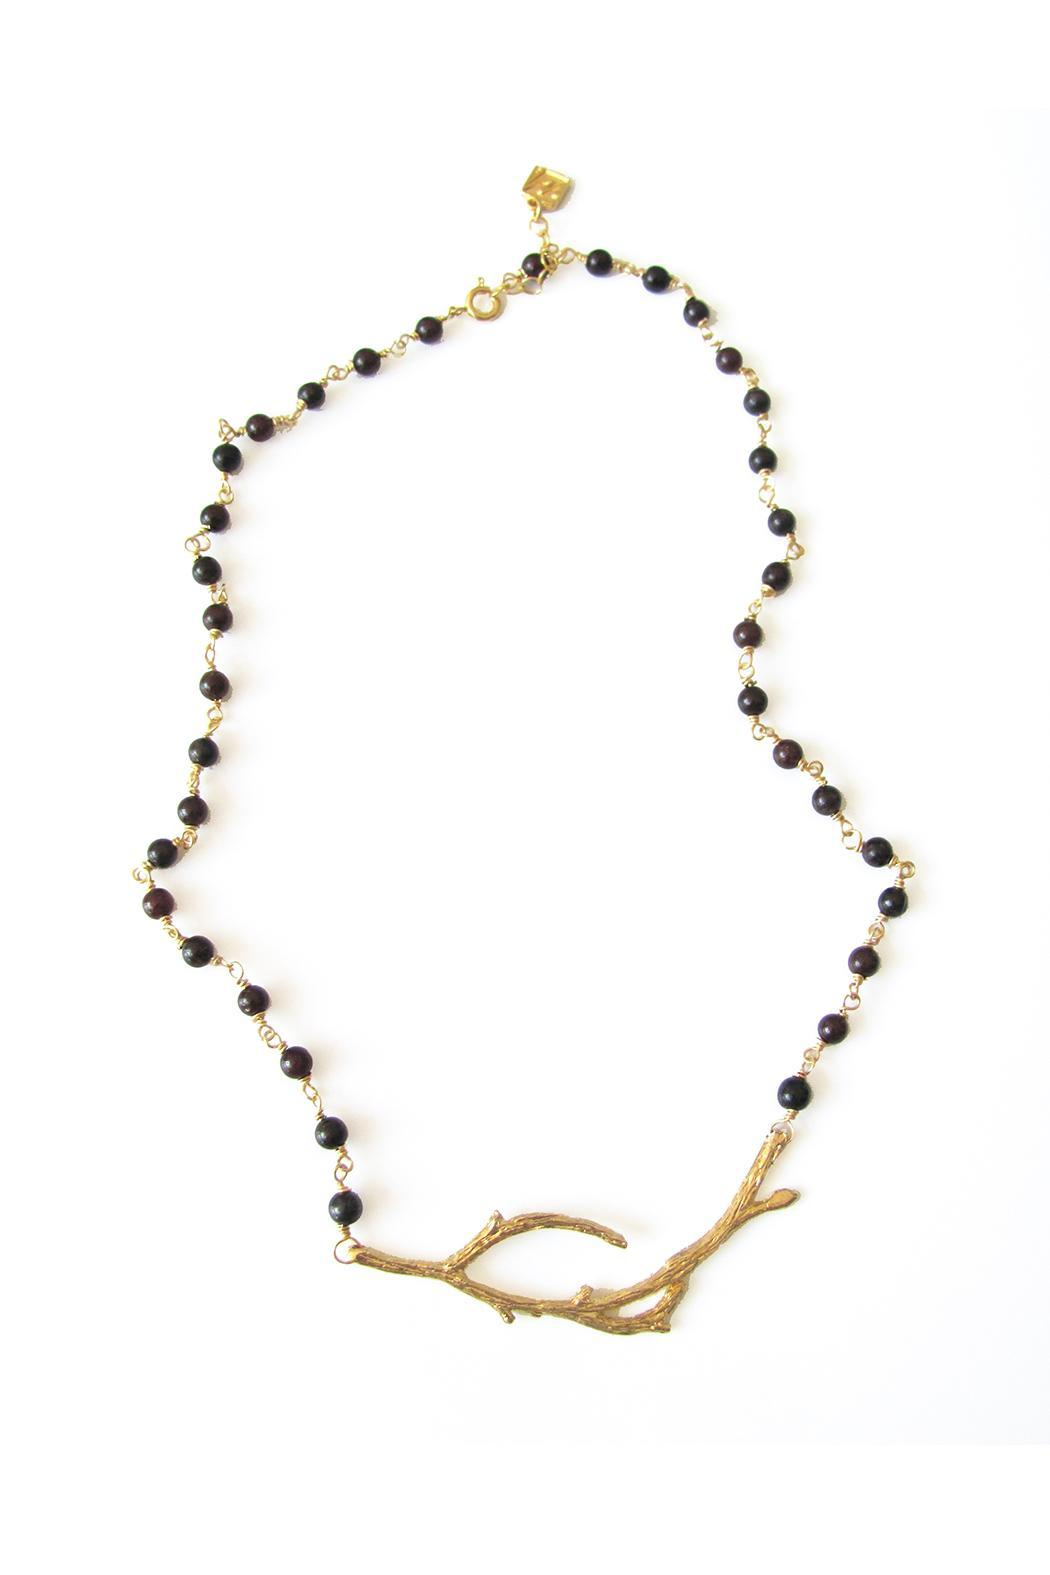 Malia Jewelry Garnet Branch Necklace - Main Image